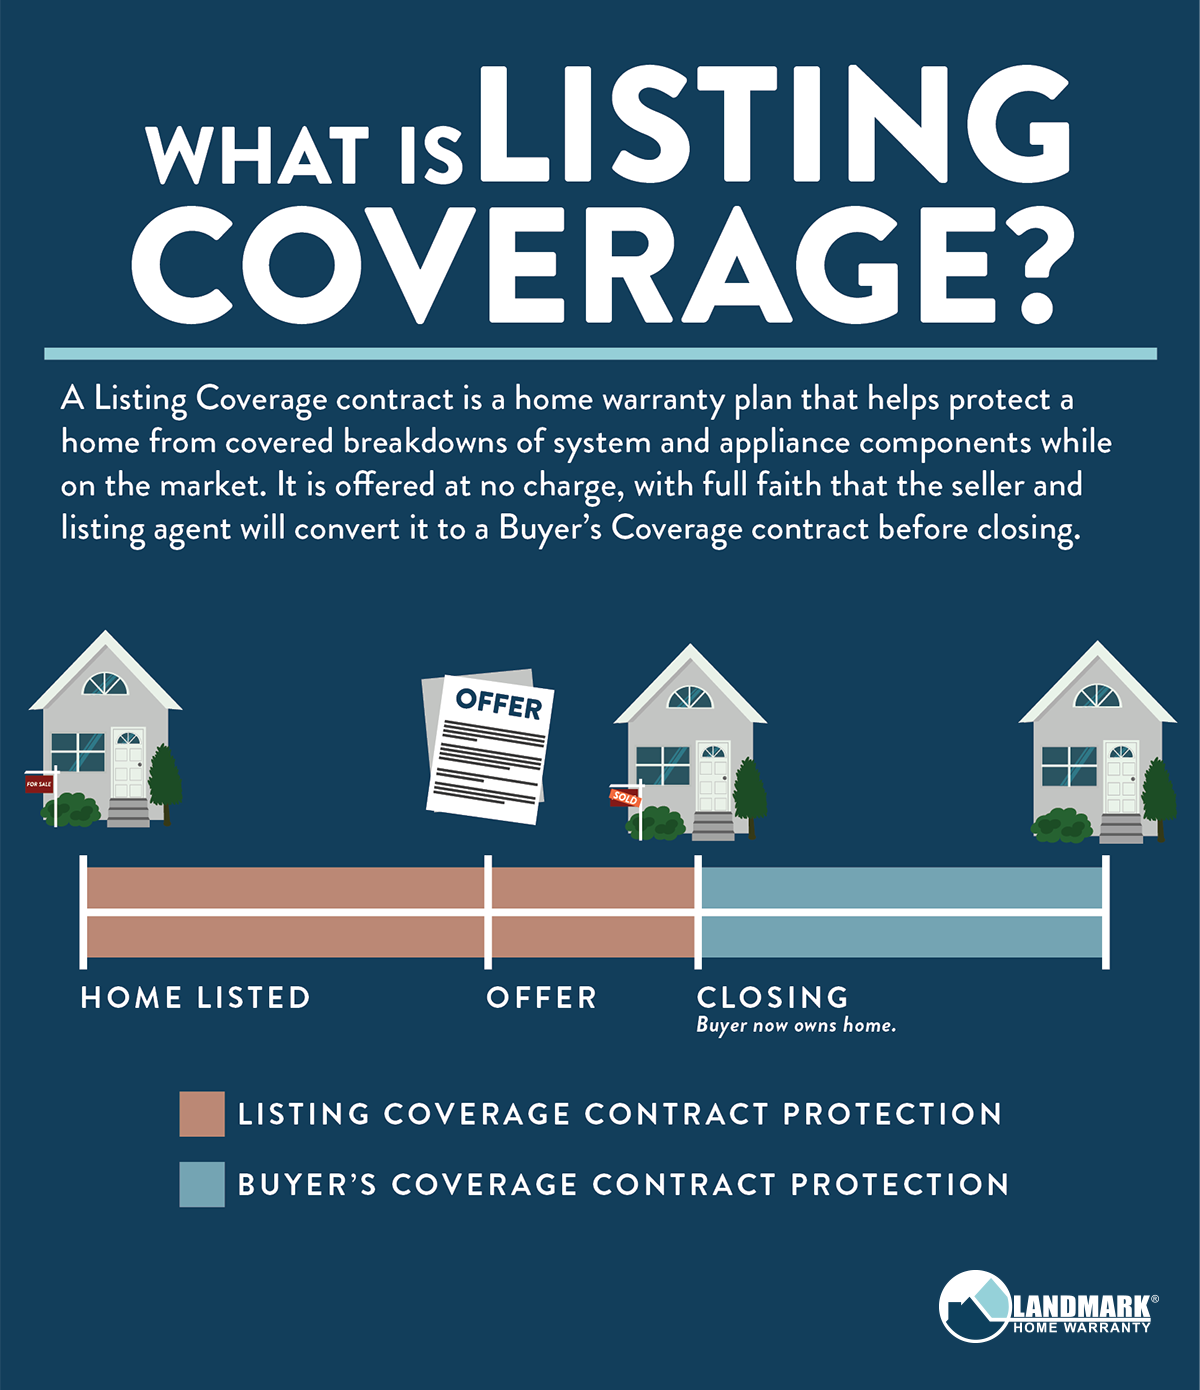 What is Landmark Home Warrnaty's listing coverage?